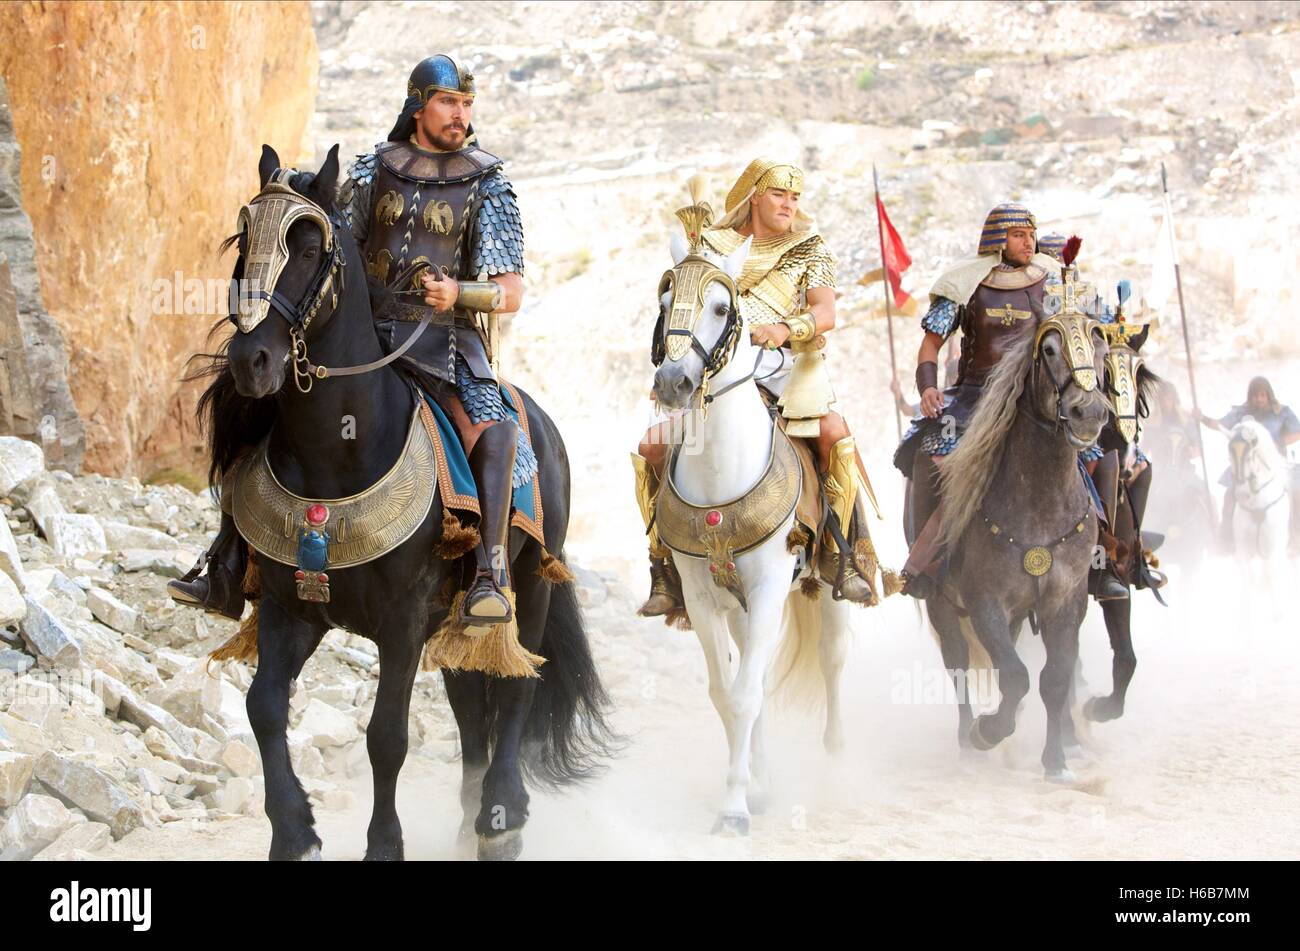 Gods And Kings 2014 Christian Bale Joel High Resolution Stock Photography And Images Alamy